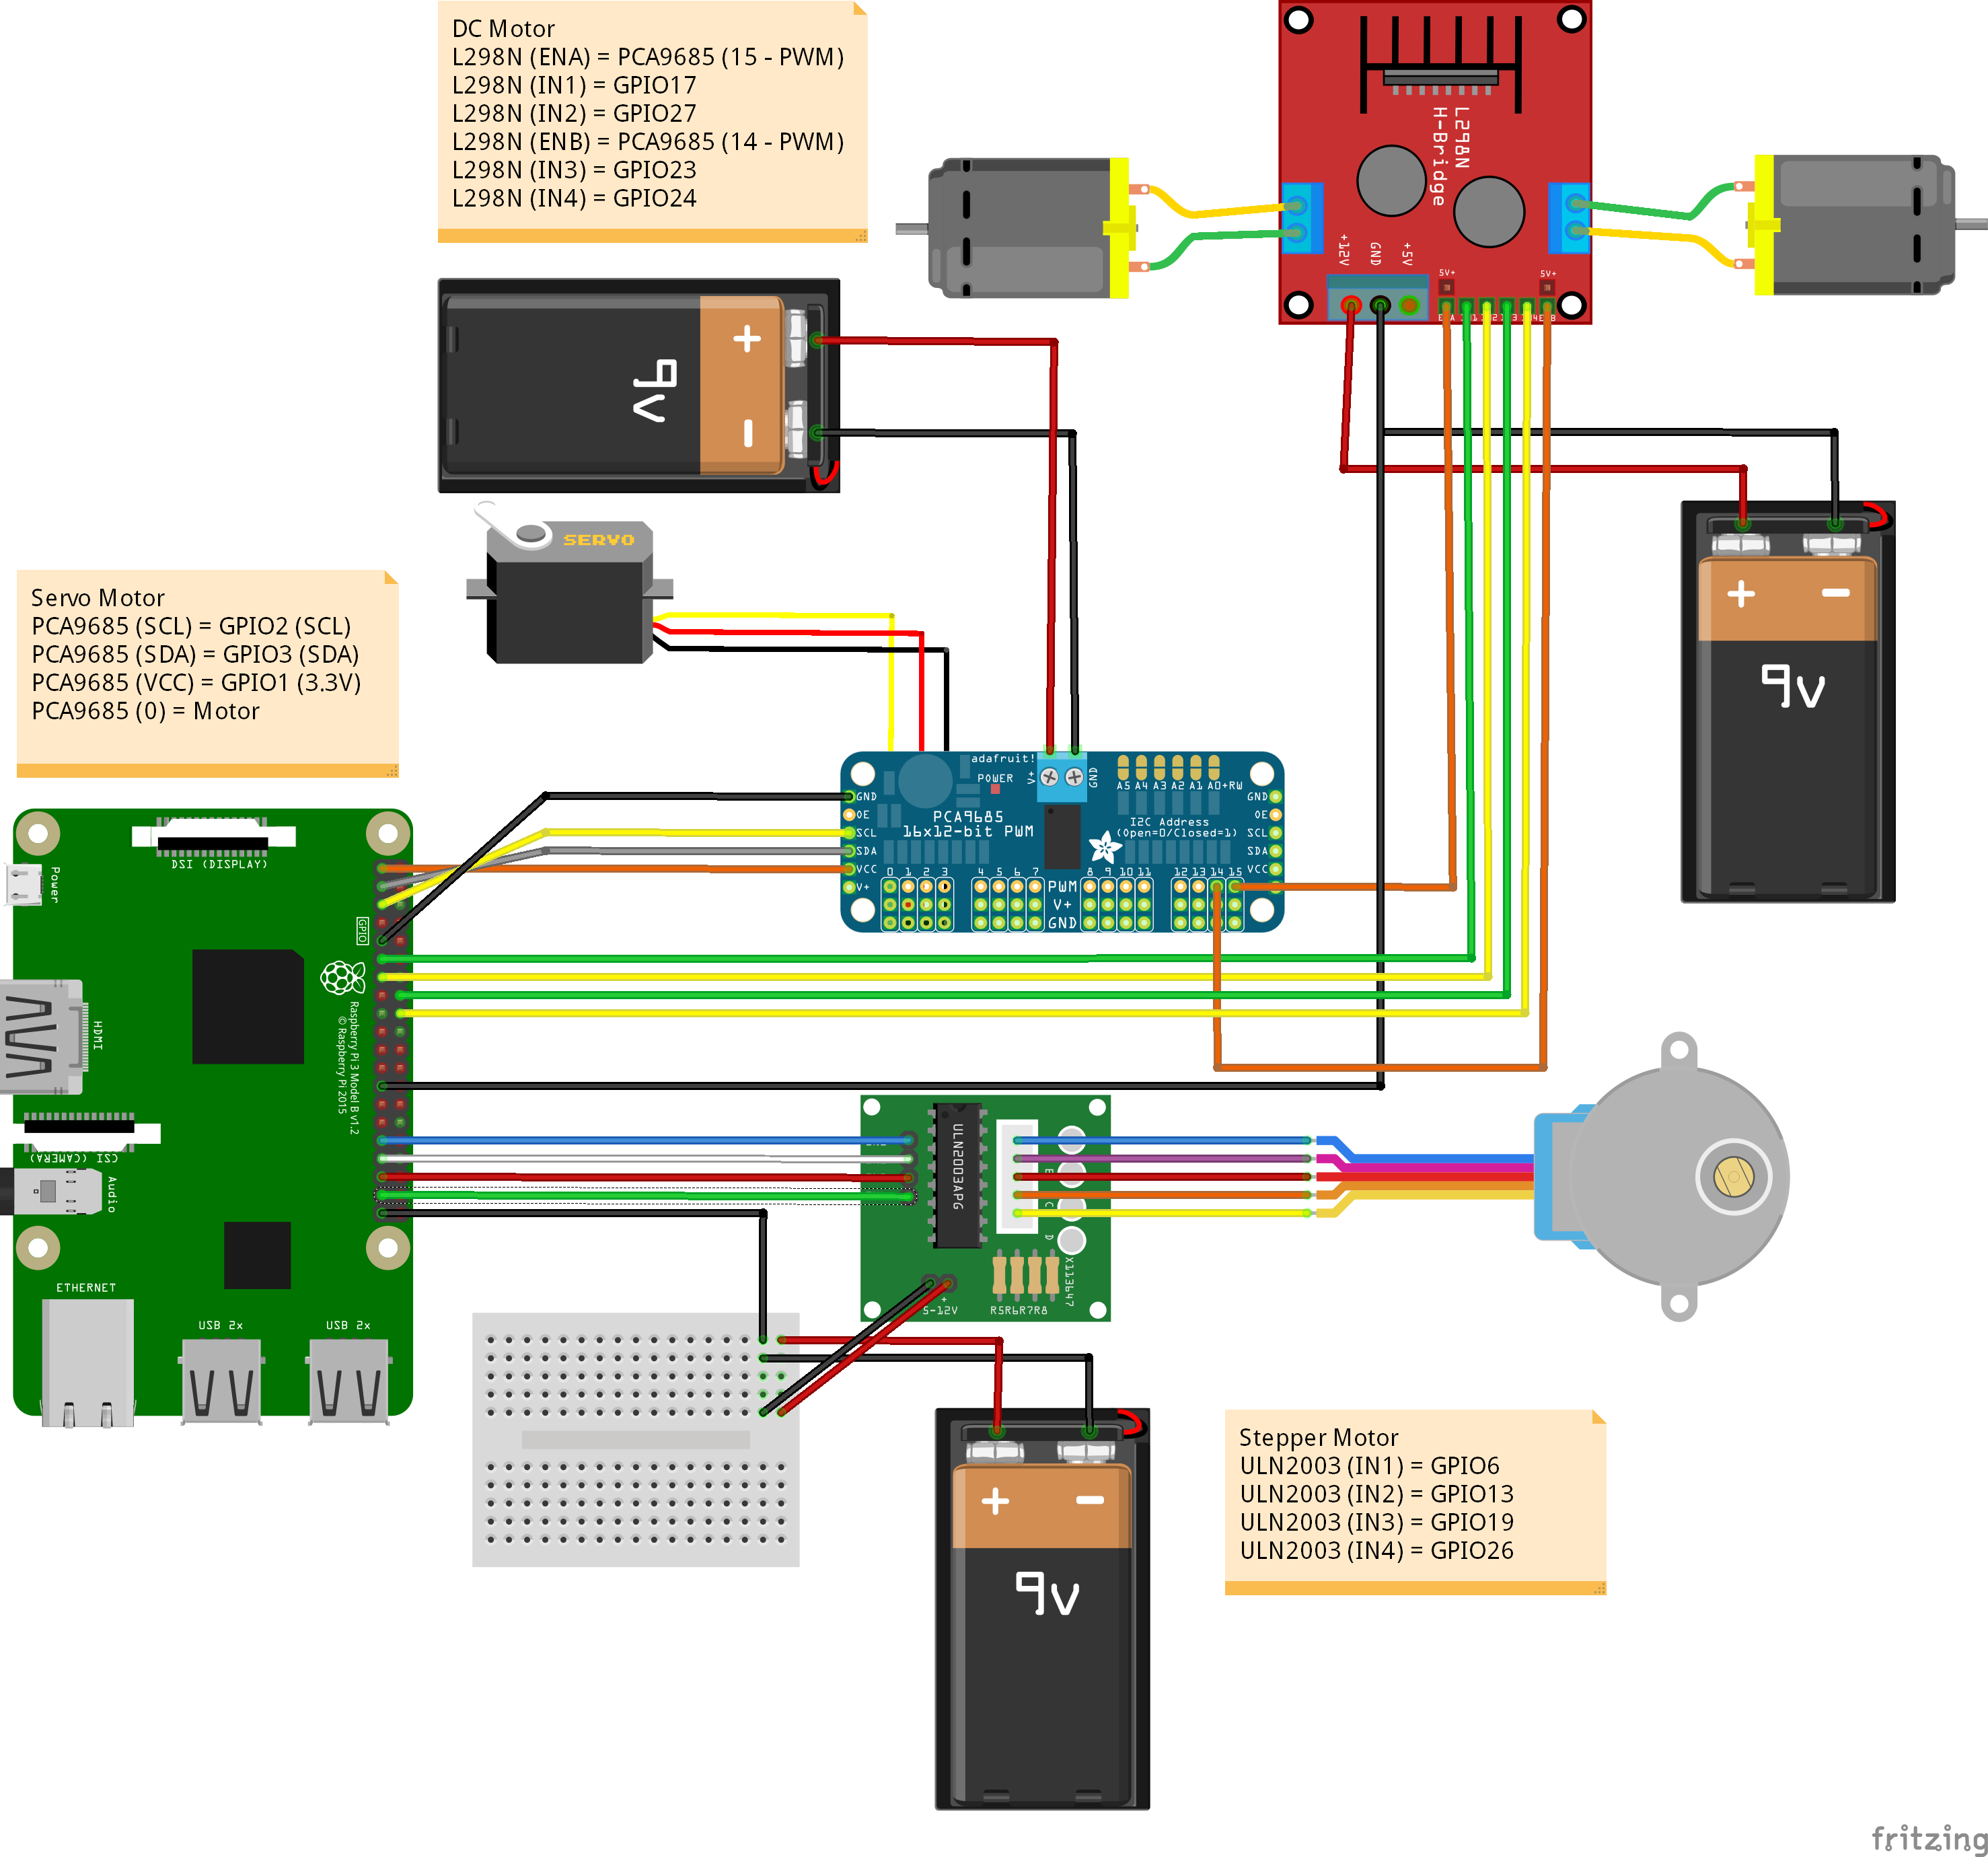 Windows Iot Stepper Servo And Dc Motors Diagram Together With L298 H Bridge Circuit Pin On 6y4ym2lbgn